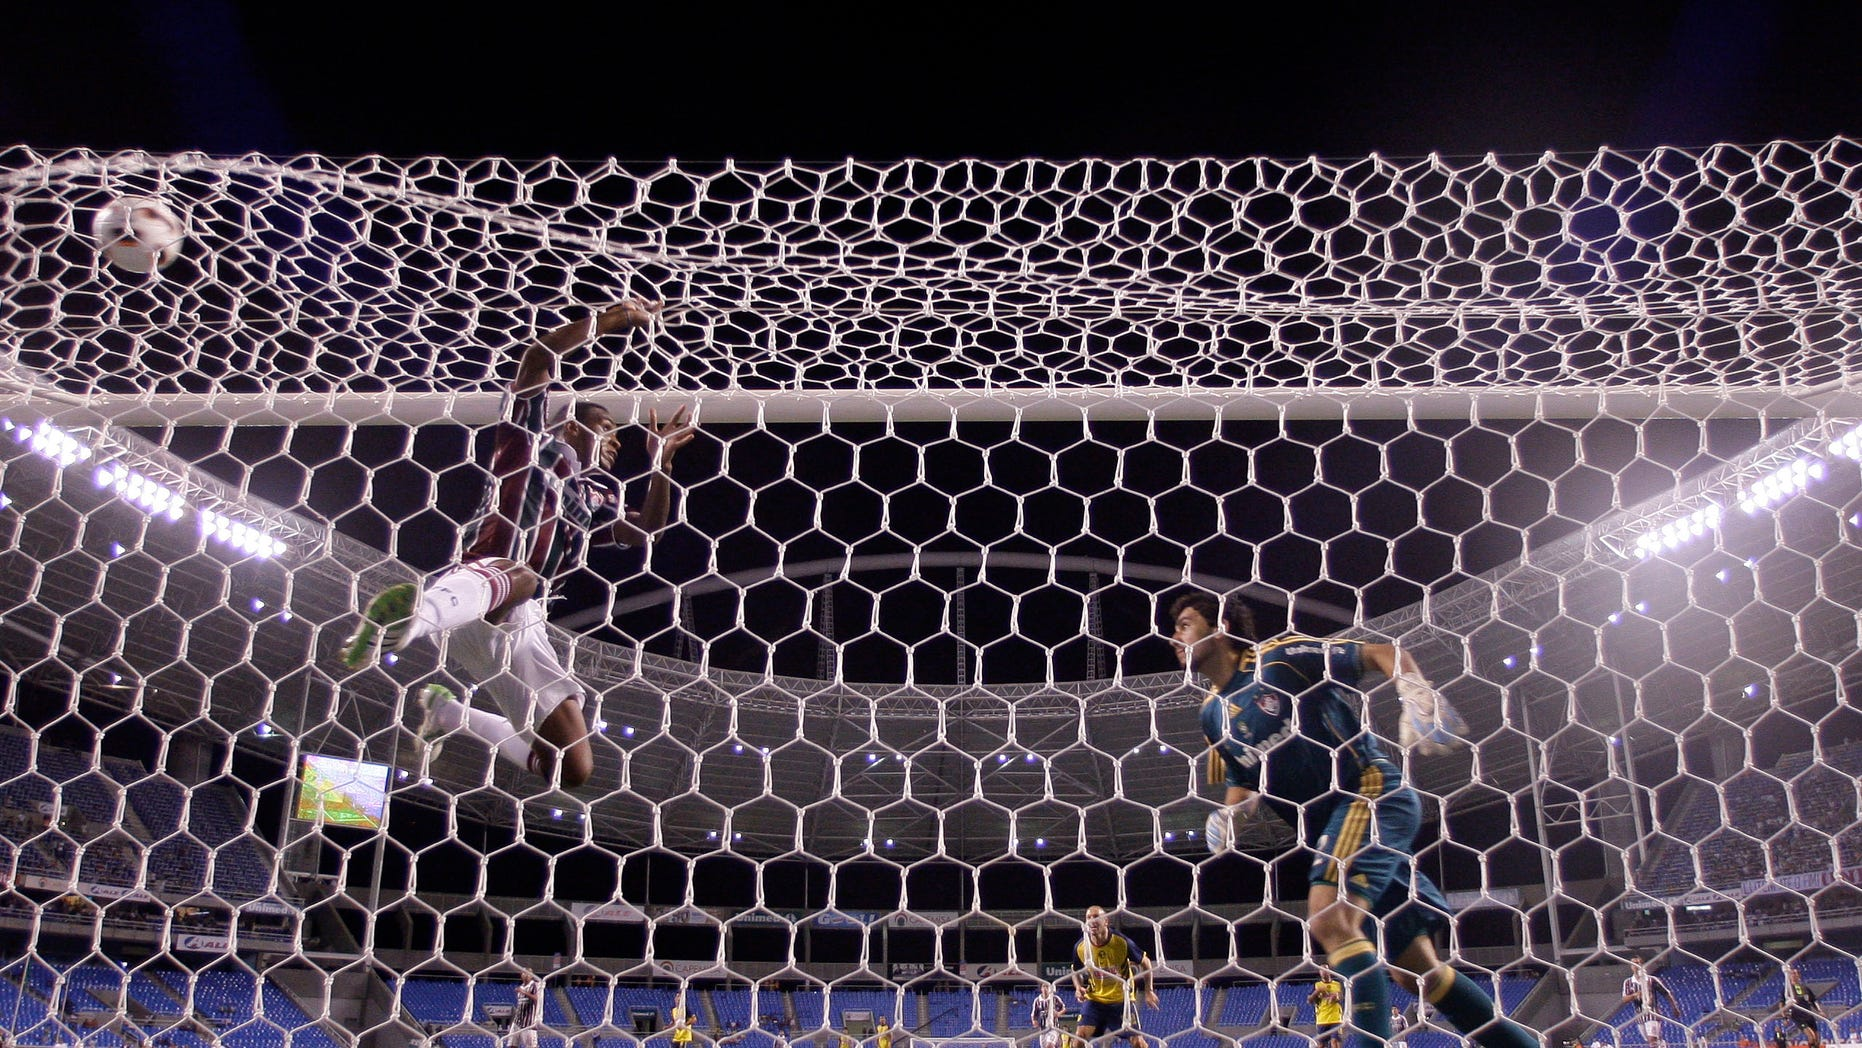 Brazil's Fluminense goalkeeper Ricardo Berna, right, and Digao, left, fail to stop a goal by Vicente Sanchez of Mexico's CF America during a Copa Libertadores soccer match in Rio de Janeiro, Brazil,  Wednesday, March 23, 2011. Brazil's Fluminense won the match 3-2. (AP Photo/Felipe Dana)